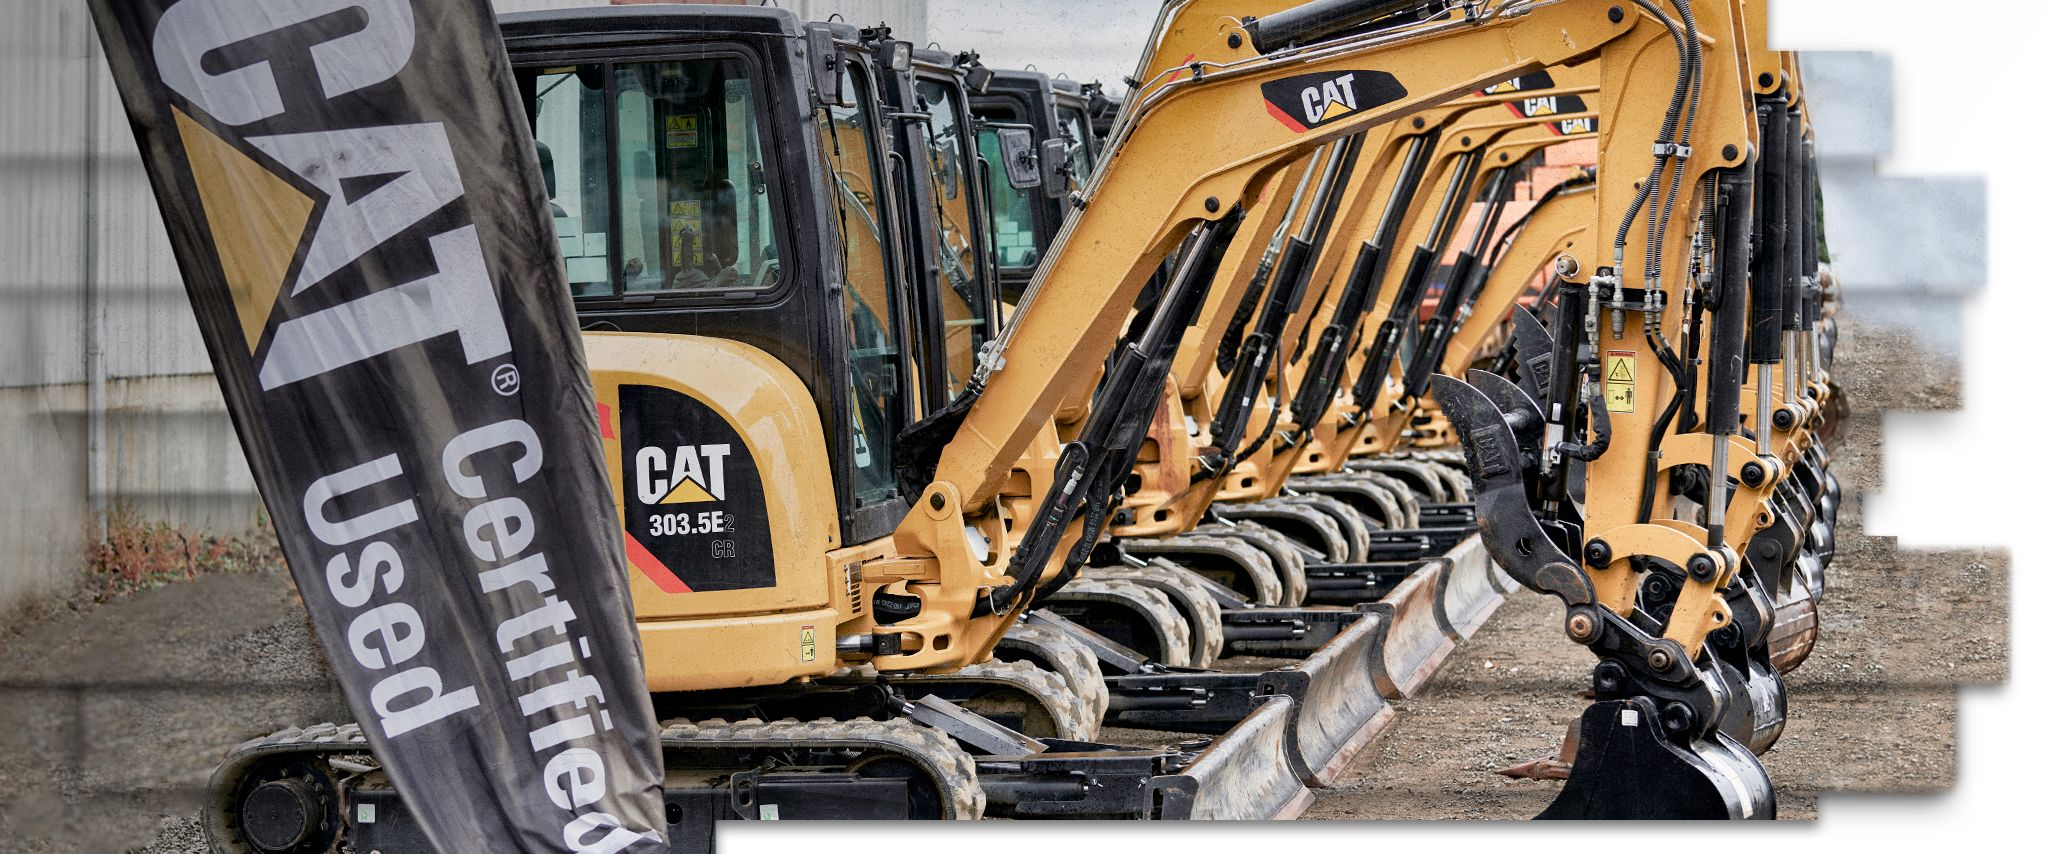 Why Should I Buy Cat Certified Used Equipment?